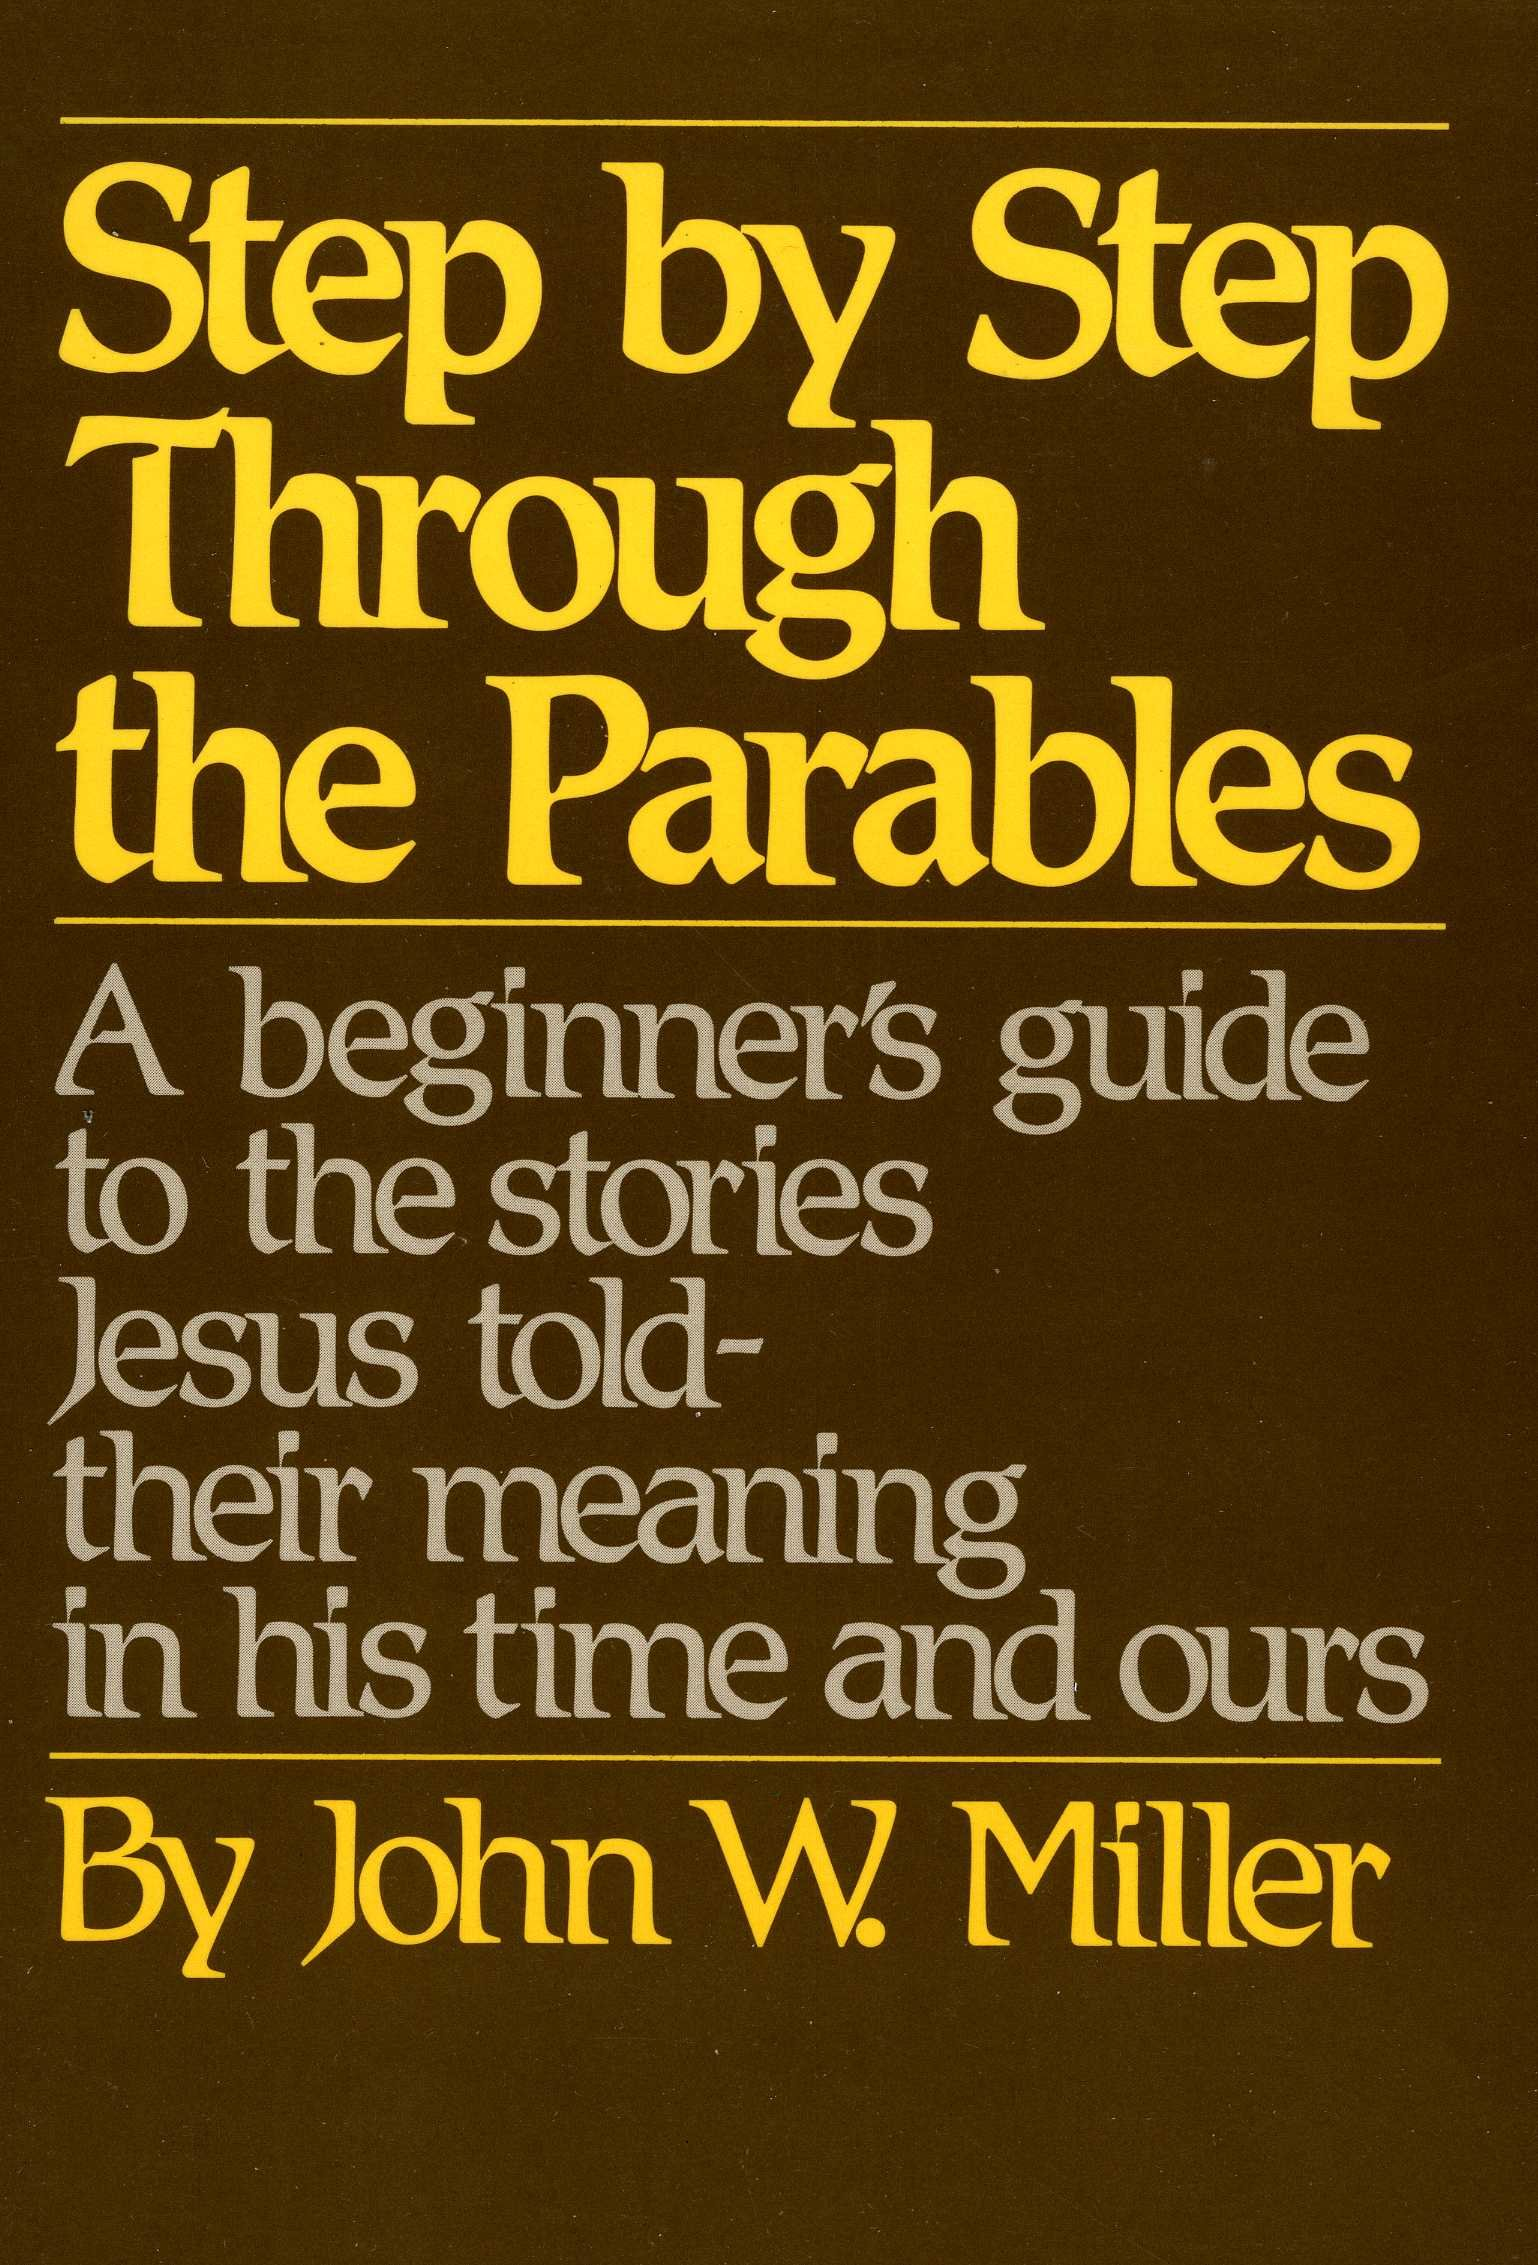 step-by-step-through-the-parables